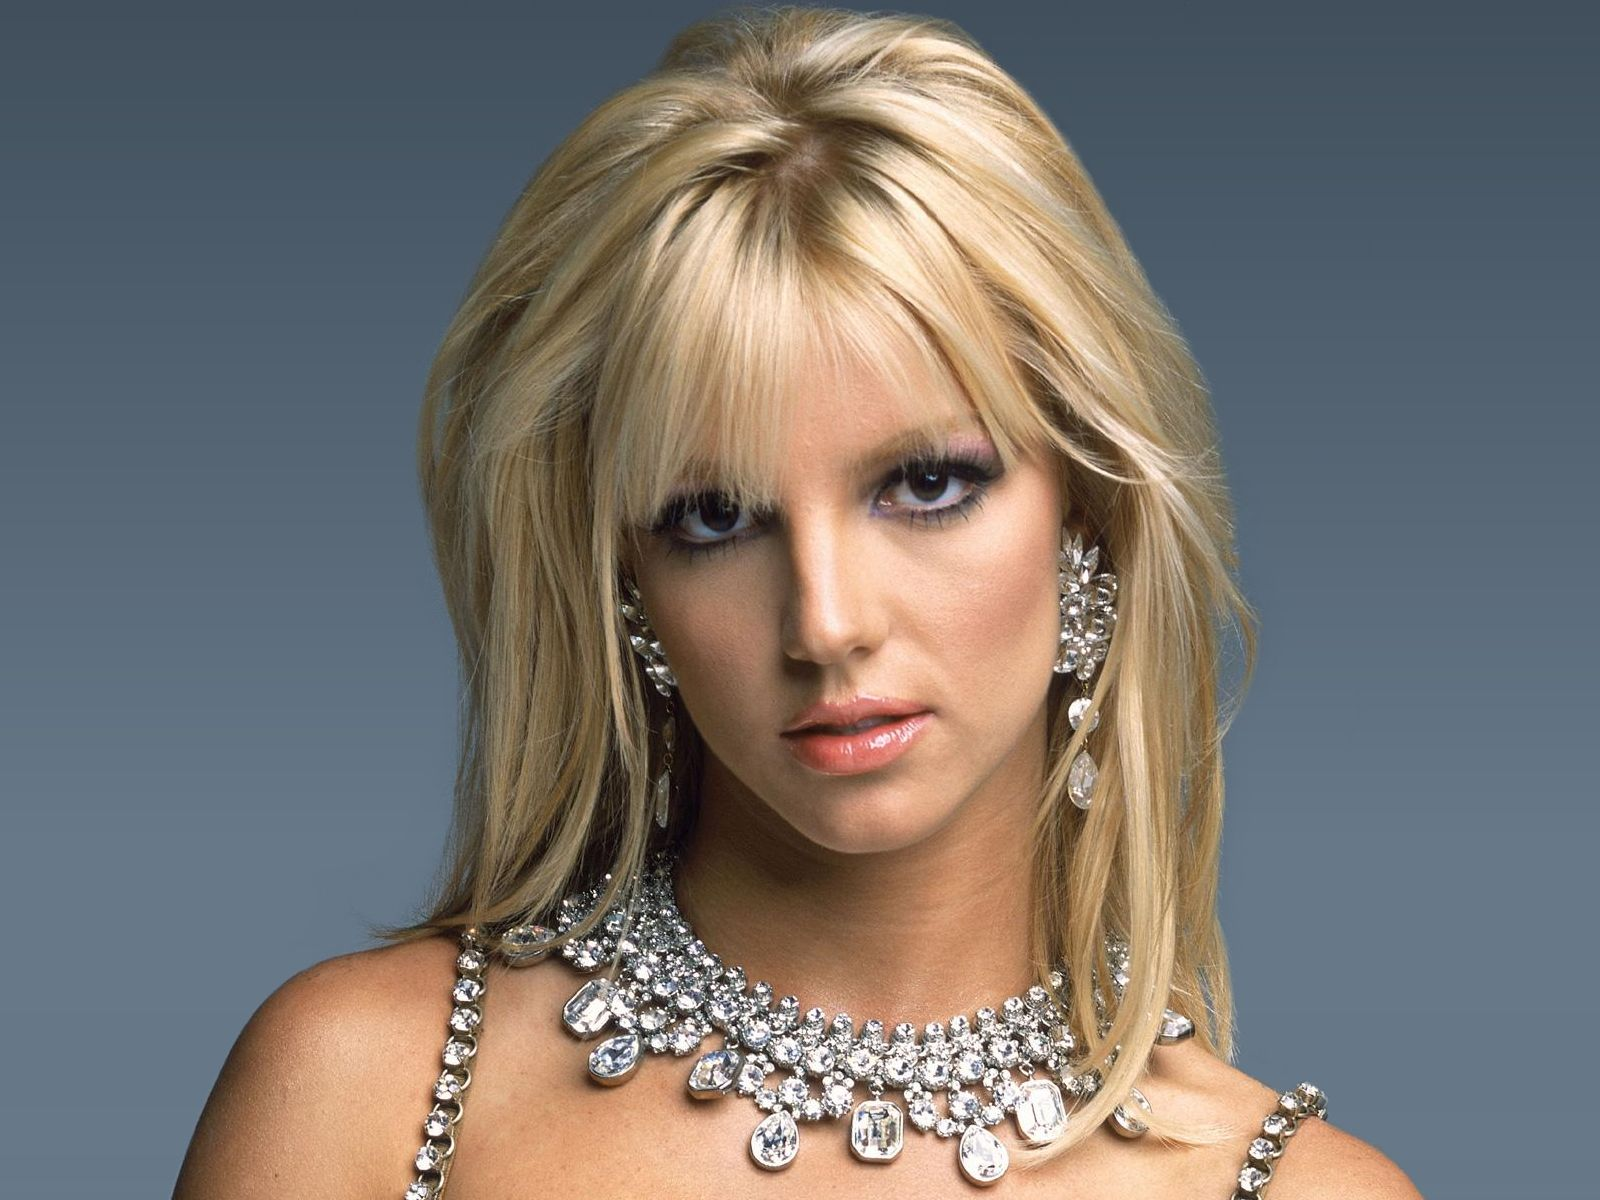 The Rinsou Wallpaper Britney Spears Hd Wallpapers